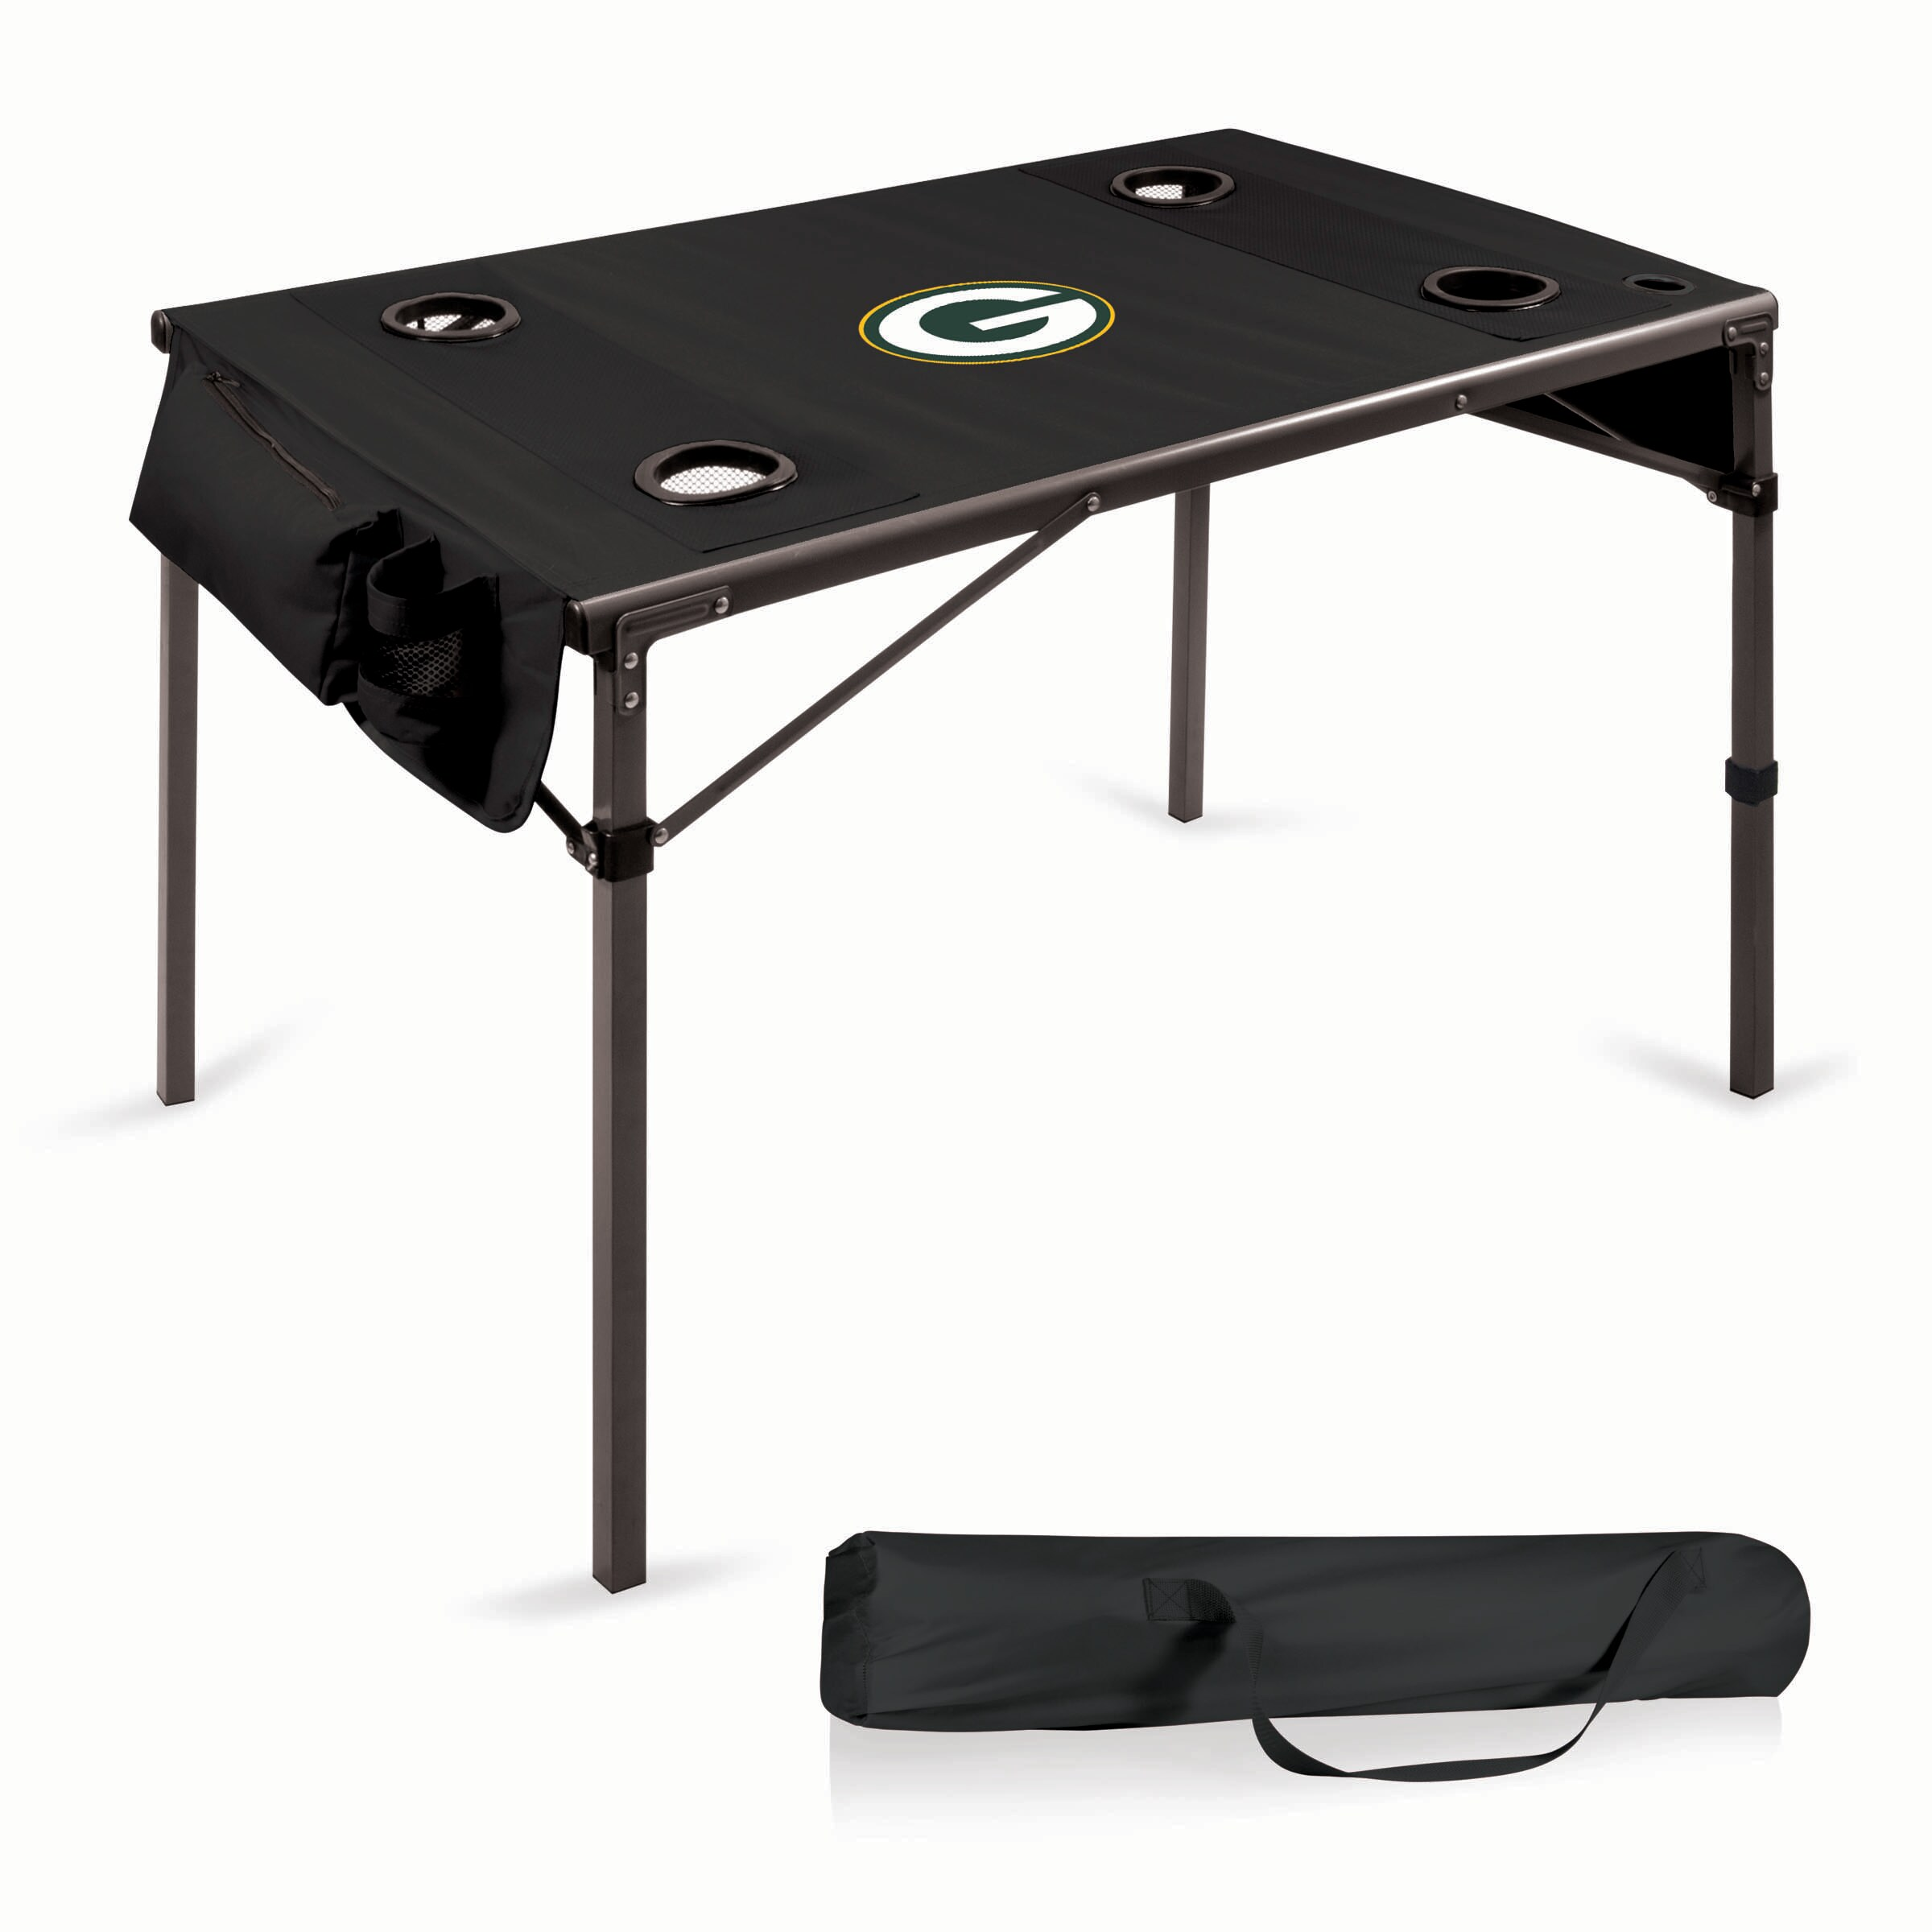 Green Bay Packers Portable Folding Travel Table - Black